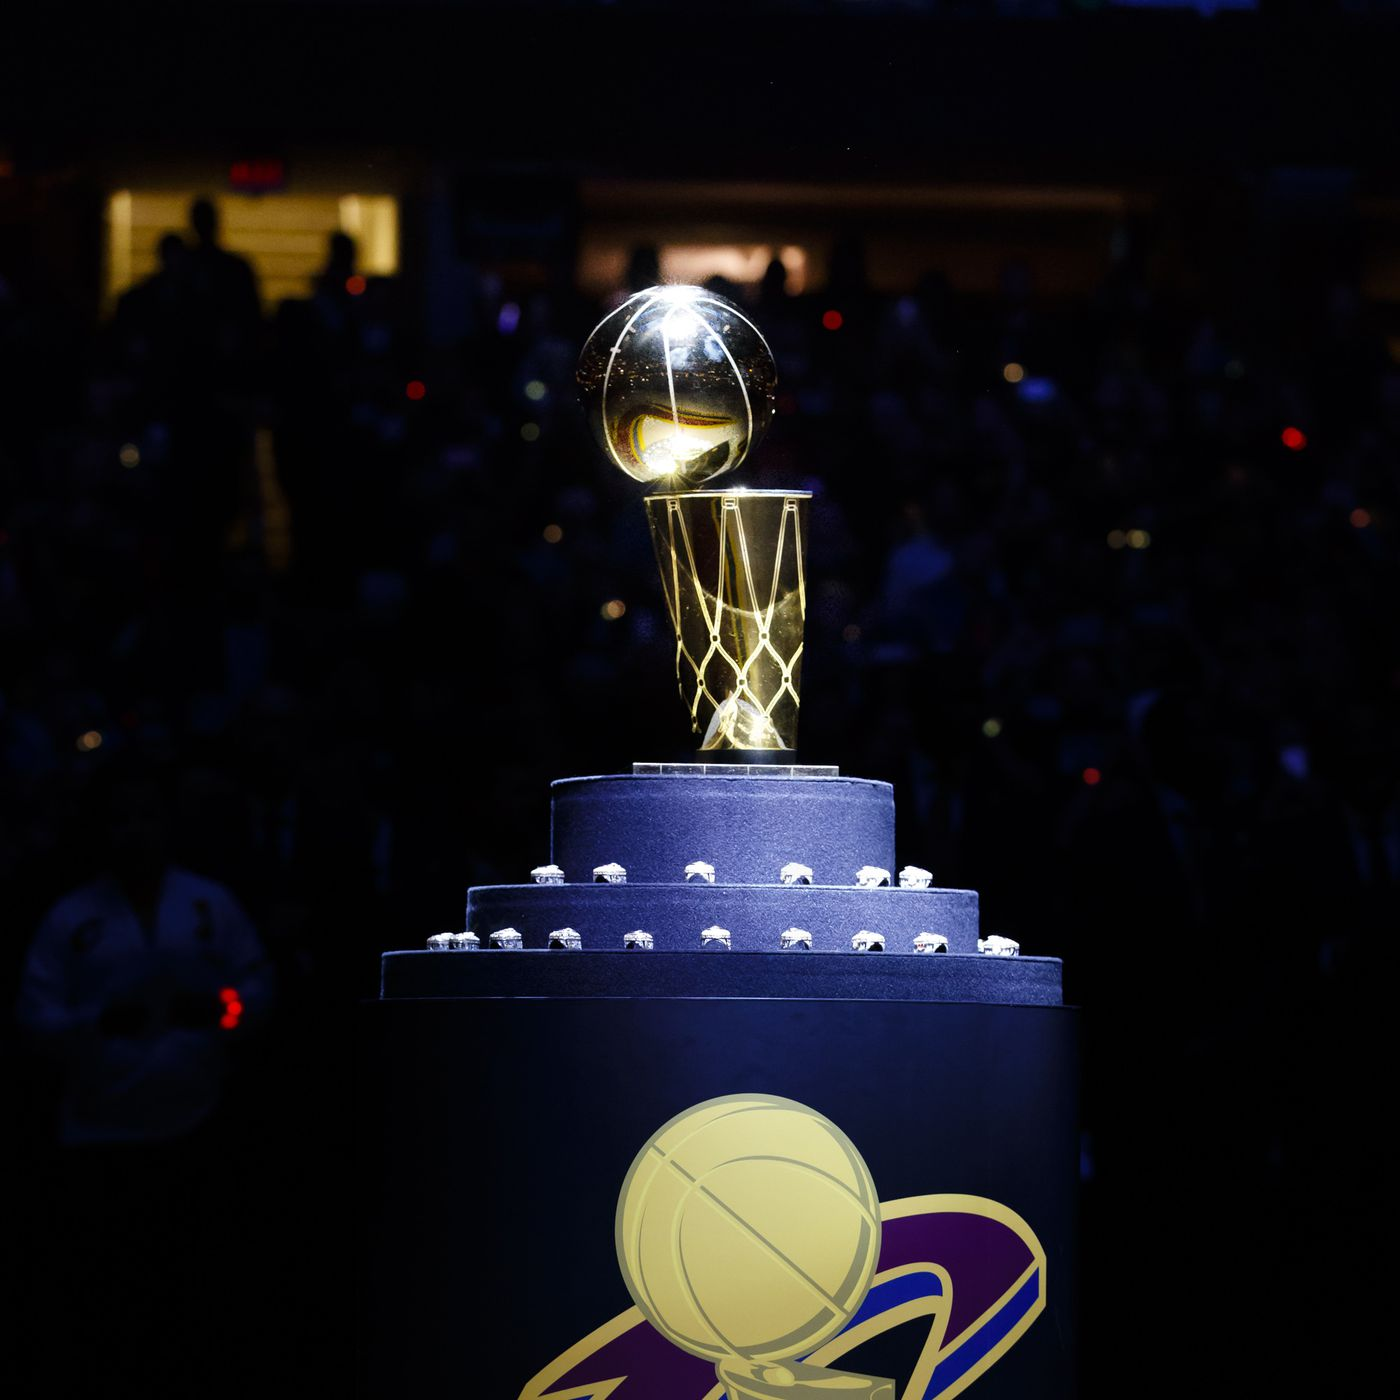 5df4a7b3d53 Cleveland Cavaliers bring back championship puzzle as a motivator ...